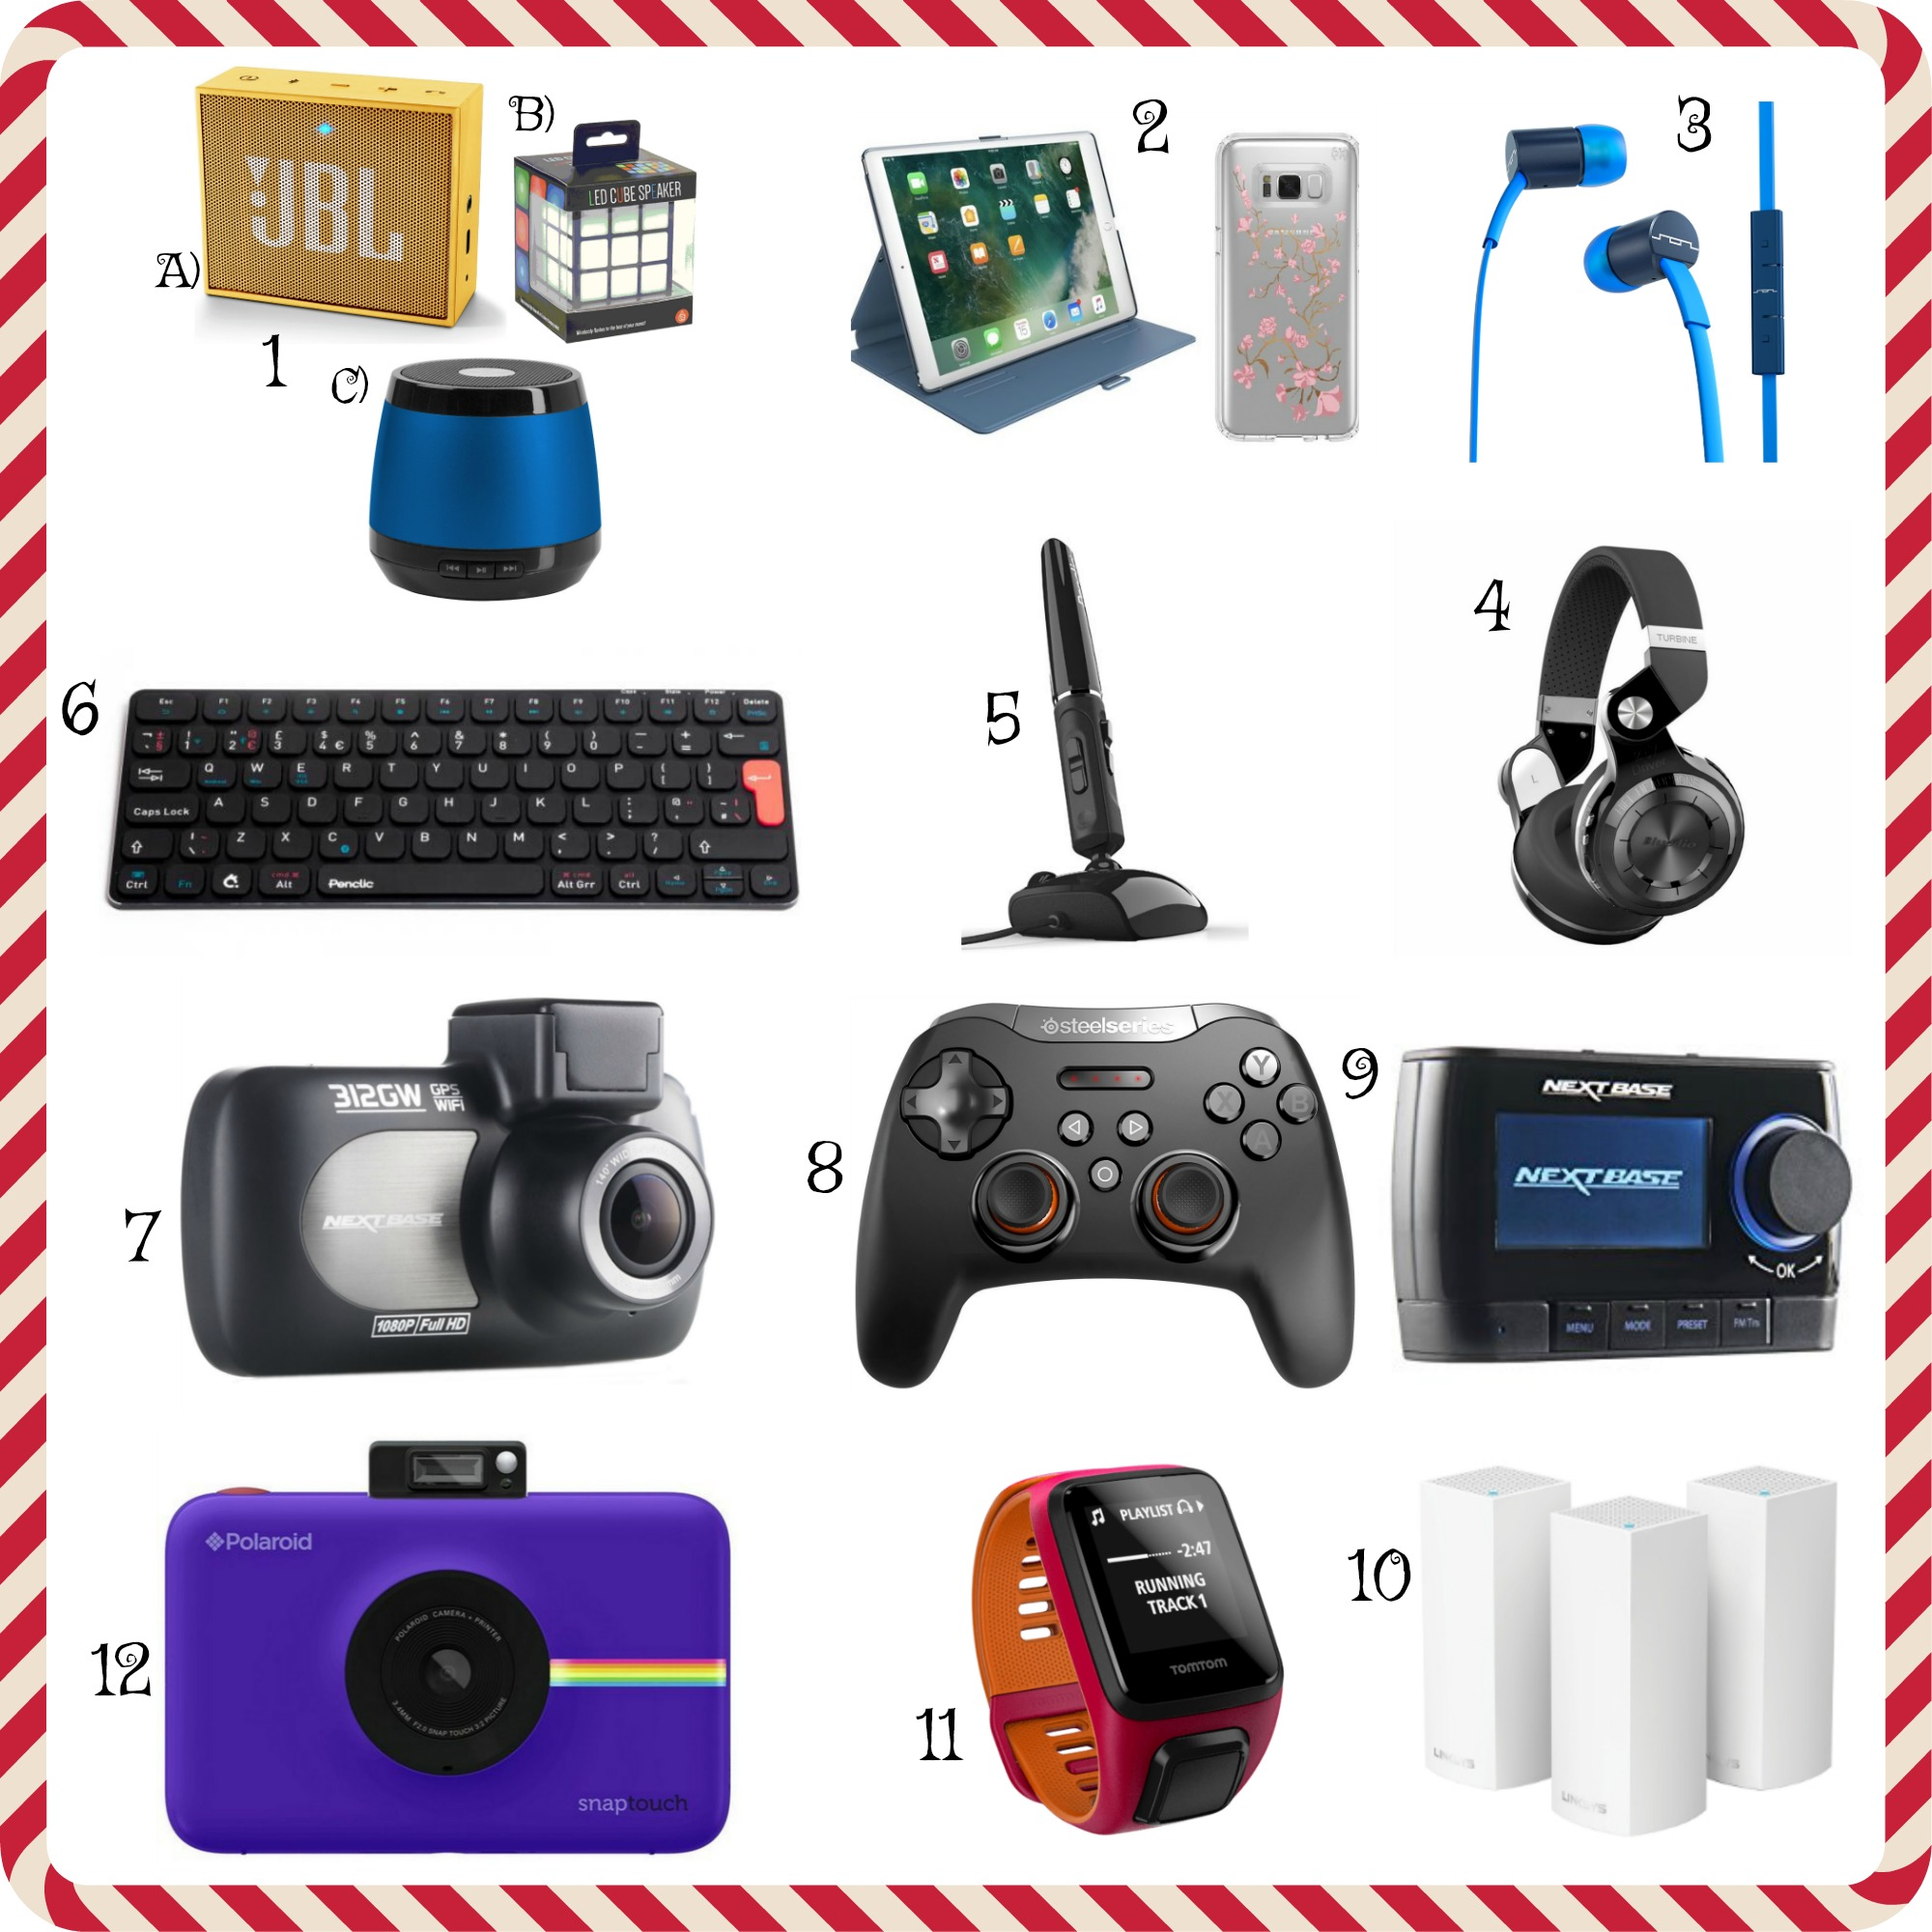 Christmas Gifts For Tech Lovers - My Three and Me